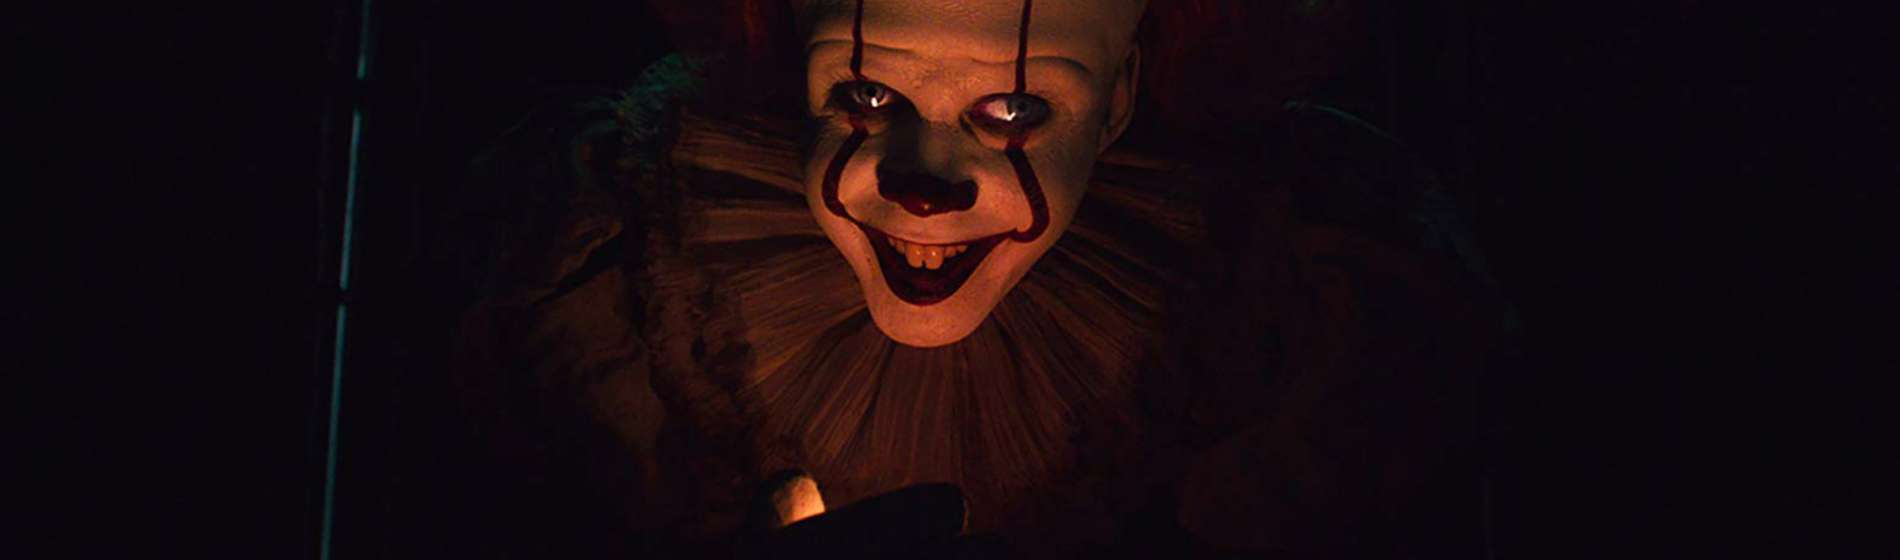 It-Chapter-Two-Pennywise-In-the-Shadows